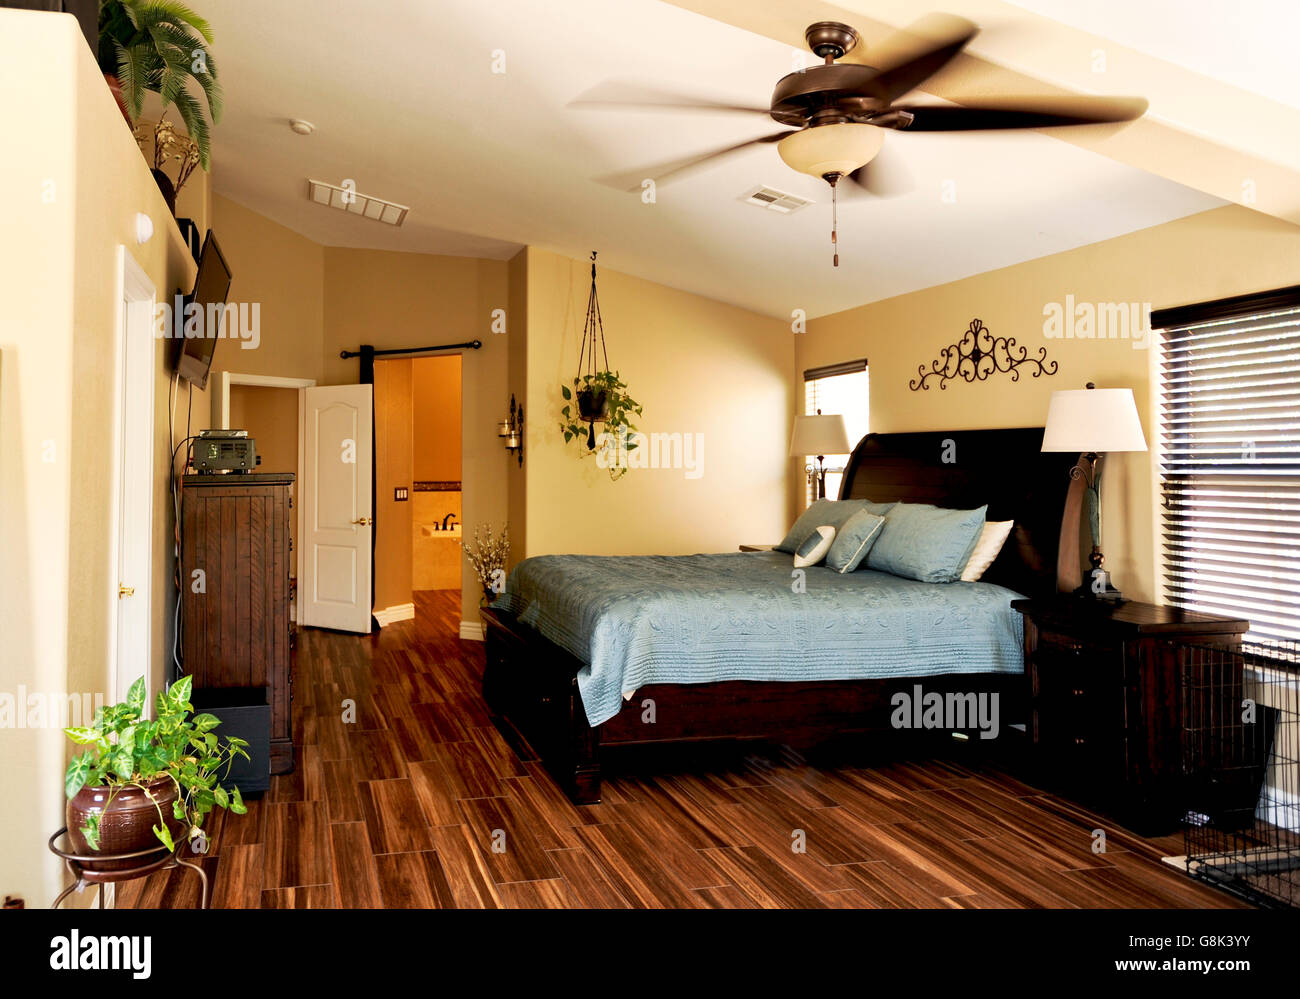 Spacious master bedroom home interior - Stock Image